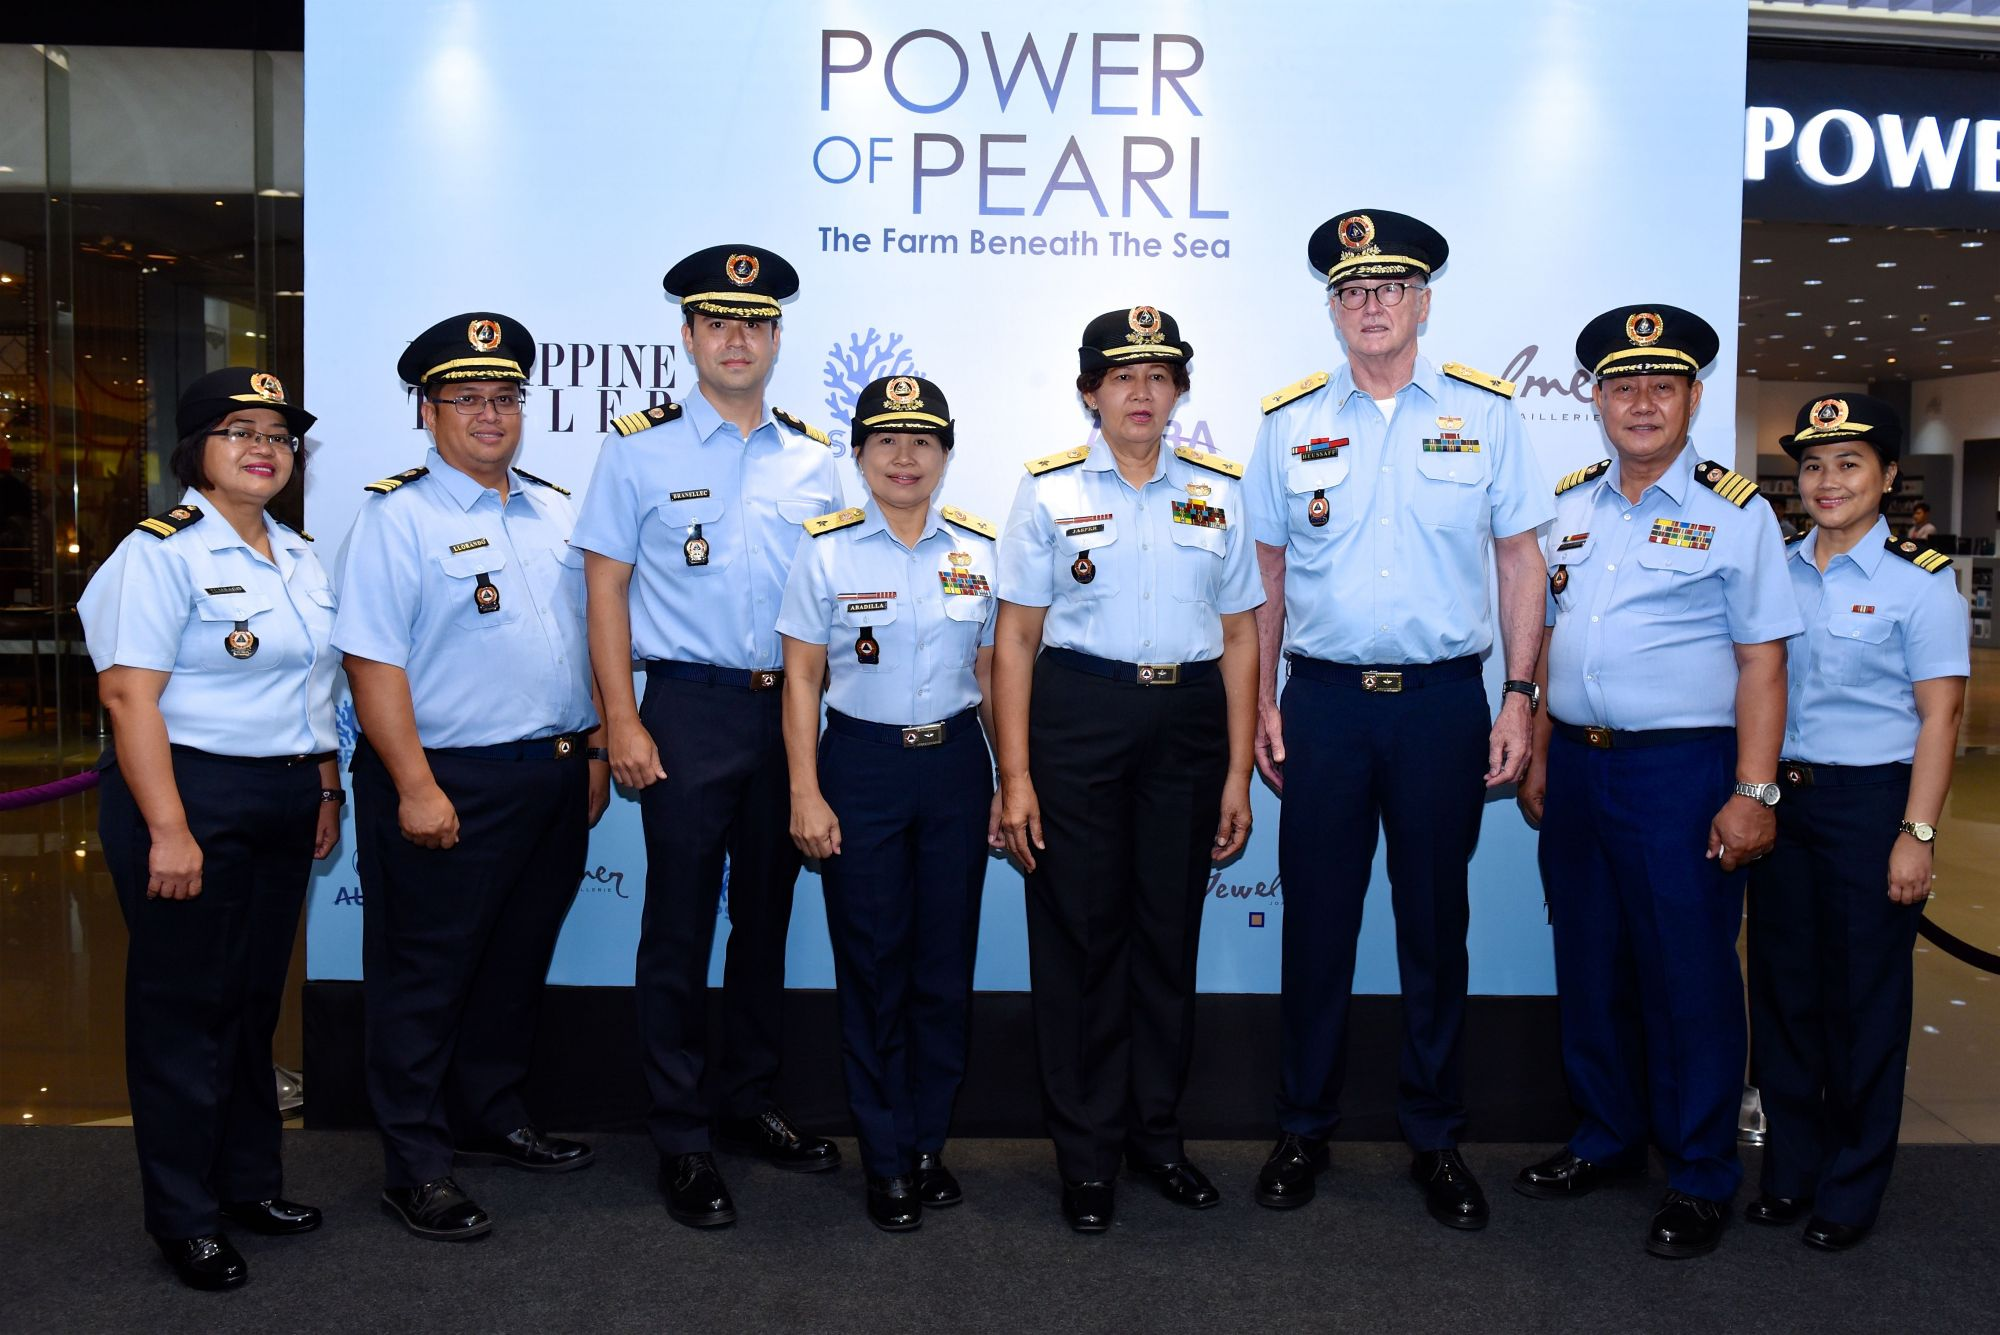 CGAD PAL LCDR Reza Tumbado 406th Squadron, LCDR Ian Llorando 402nd Squadron, Capt. Jacques Christophe Branellec, COMMO Marita Abadilla 402nd Squadron, COMMO Rosalym Jasper,   COMMO Louis Paul Heusaff, Capt. Payuyo, LCDR Melinda de Luna 402nd Squadron